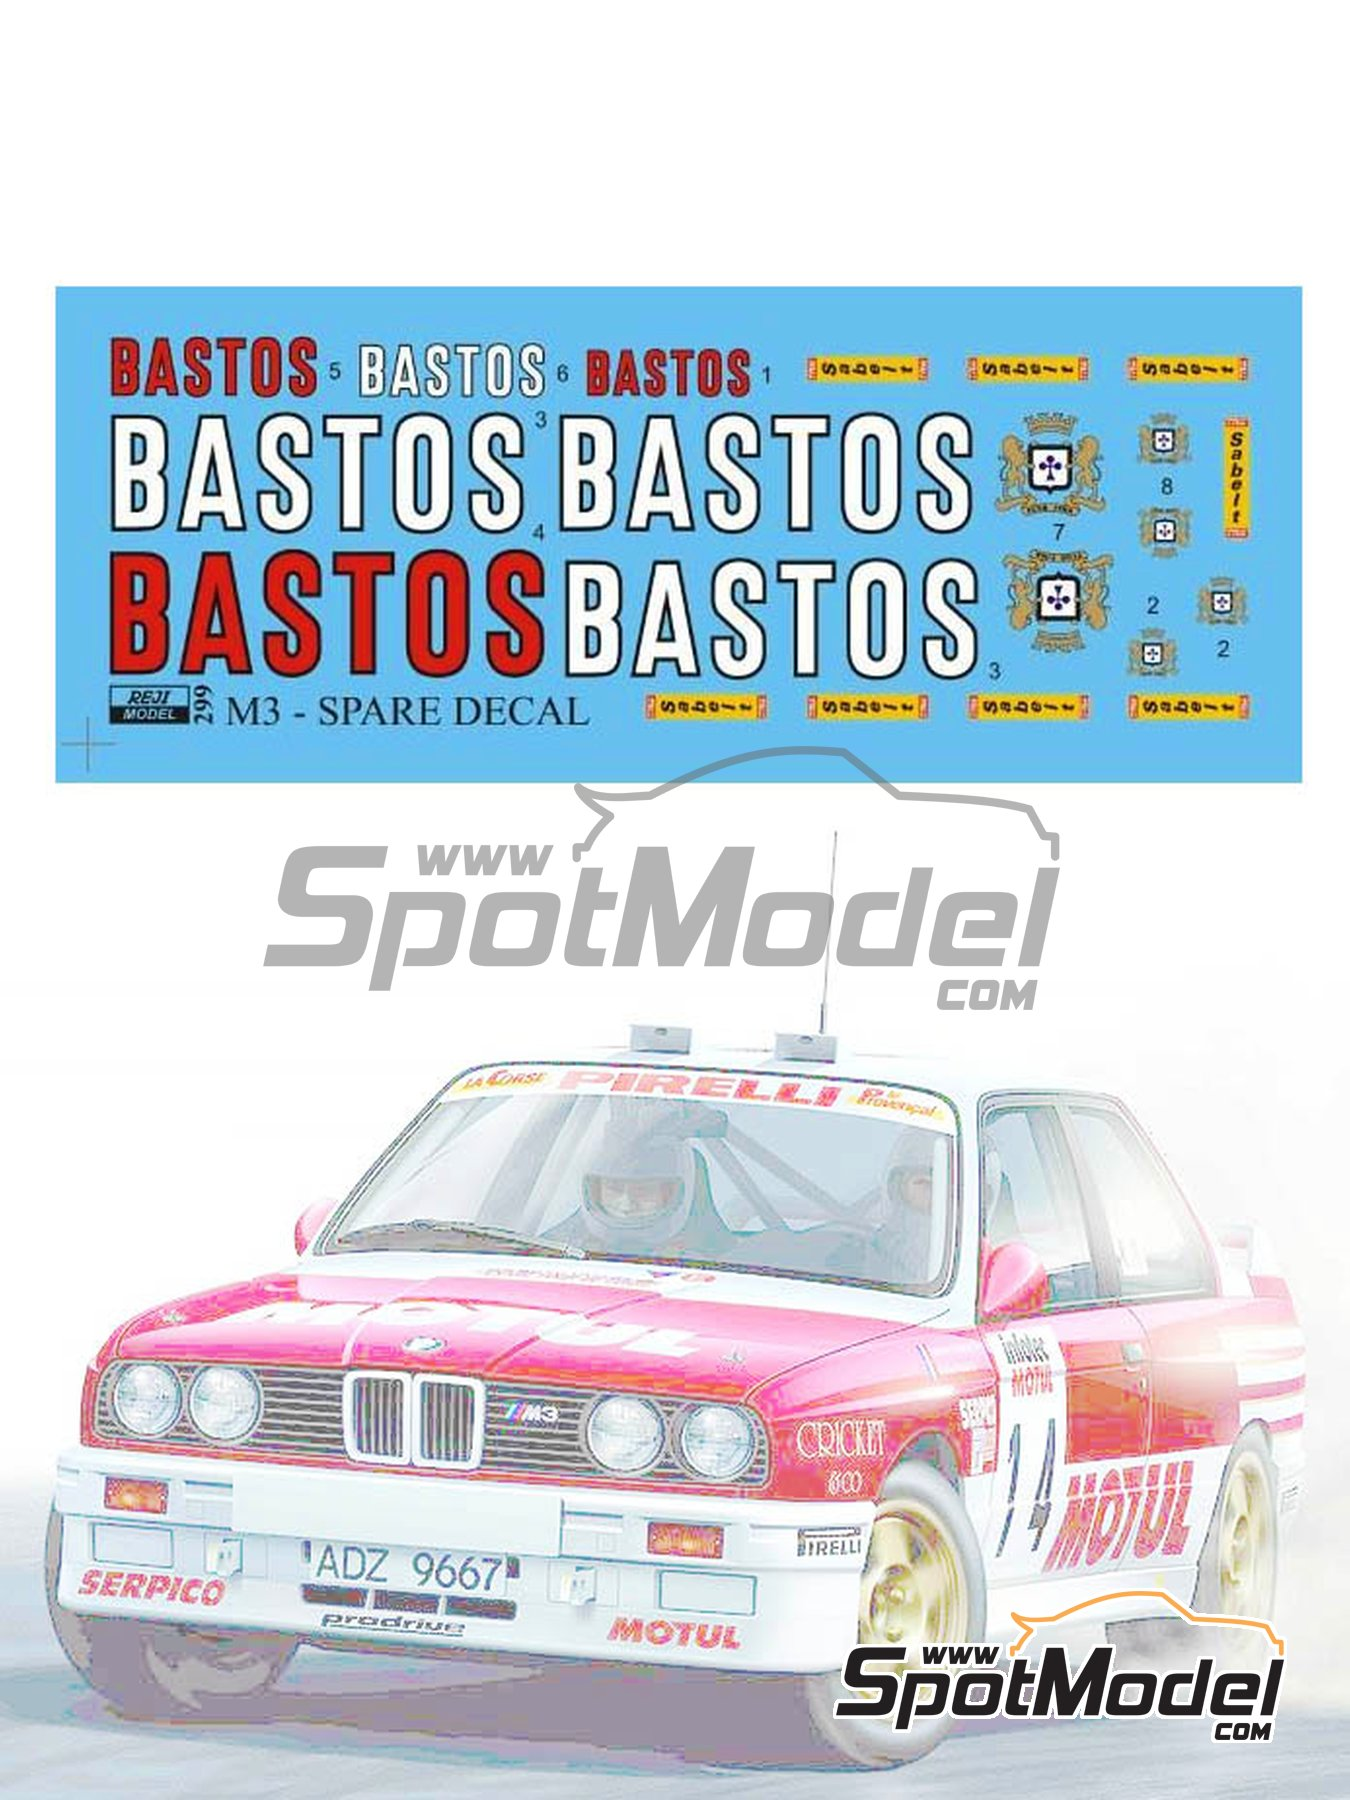 BMW M3 E30 Rally Group A Bastos - Tour de Corse | Logotypes in 1/24 scale manufactured by Reji Model (ref.REJI-299) image